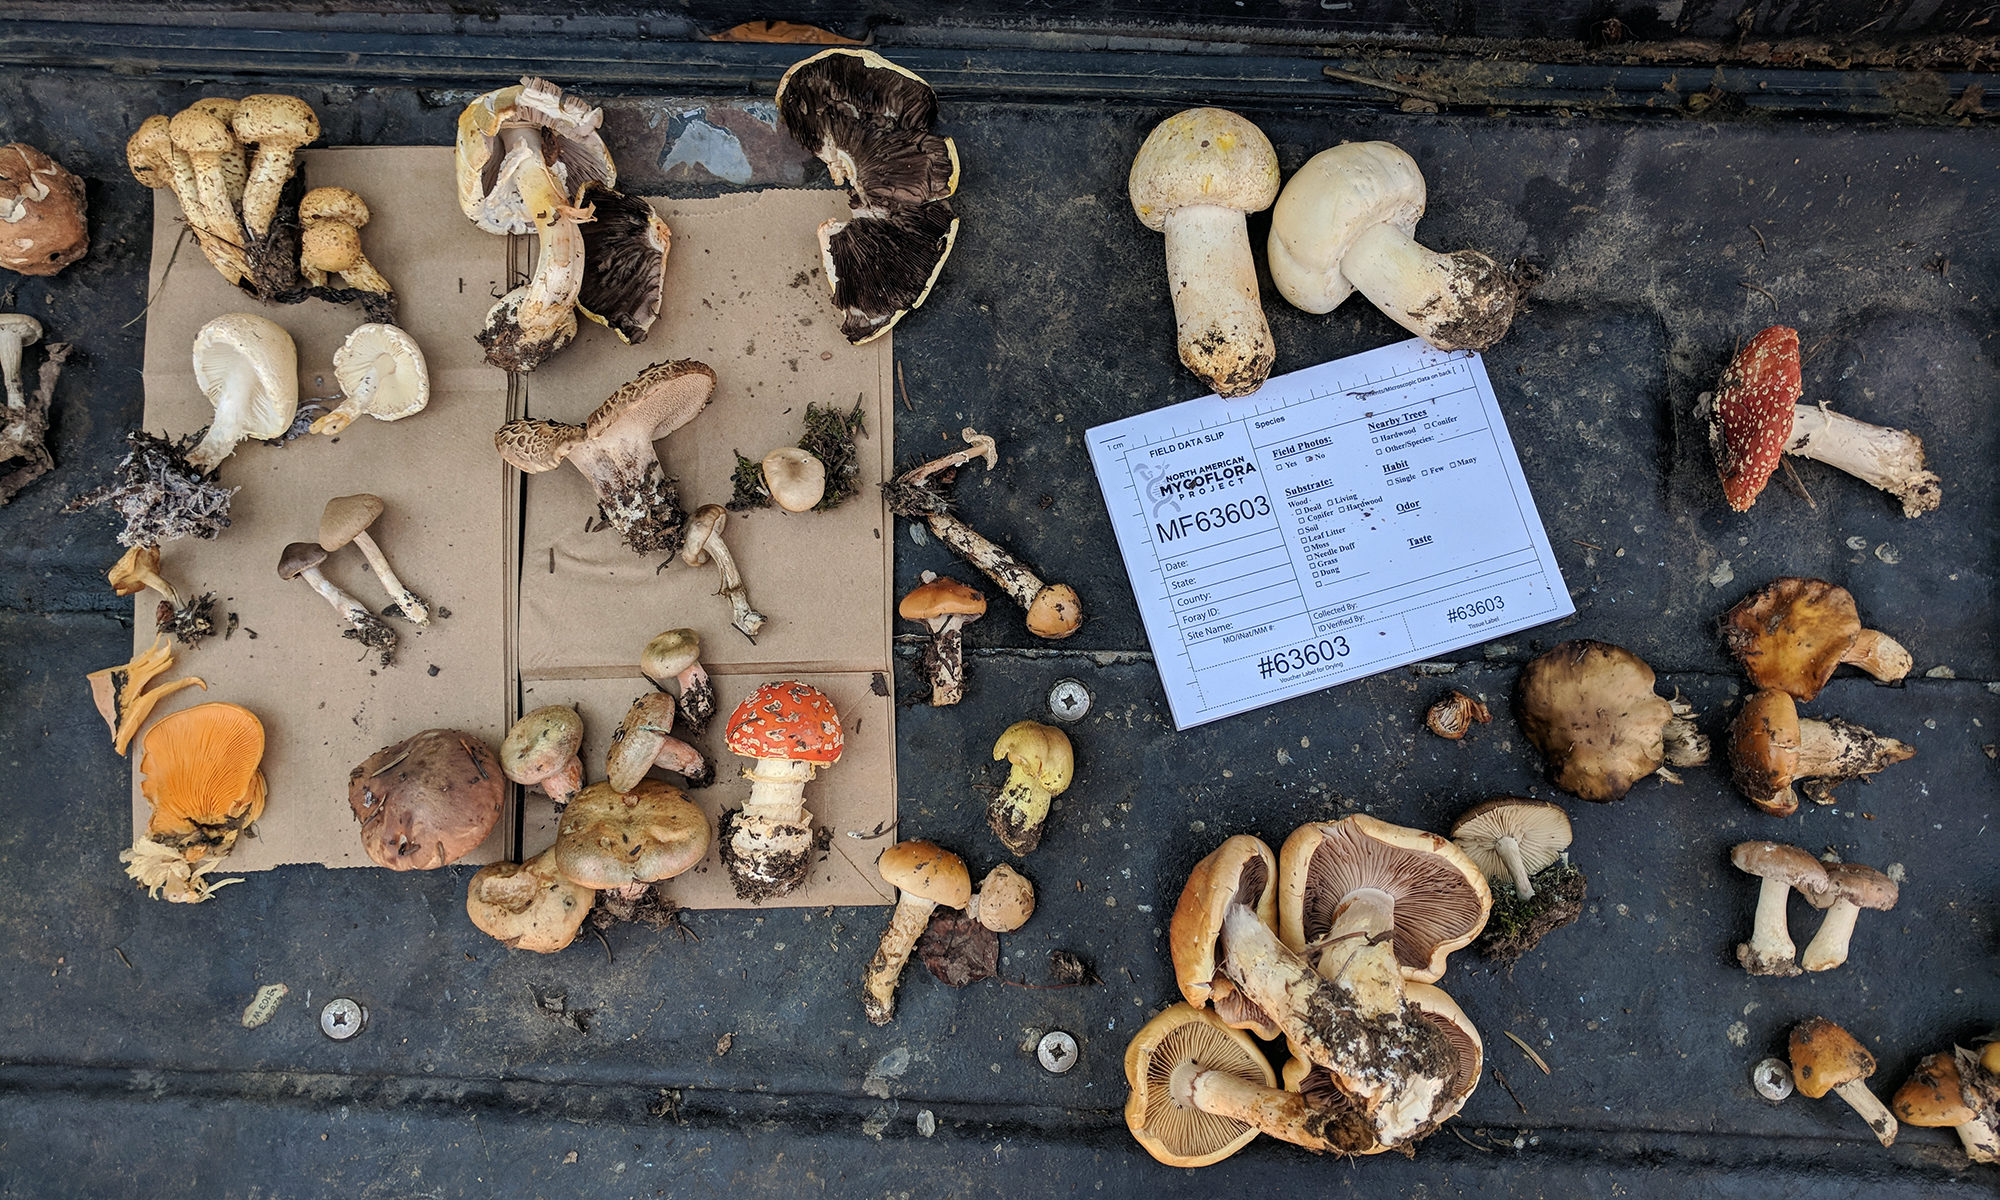 Pikes Peak Mycological Society